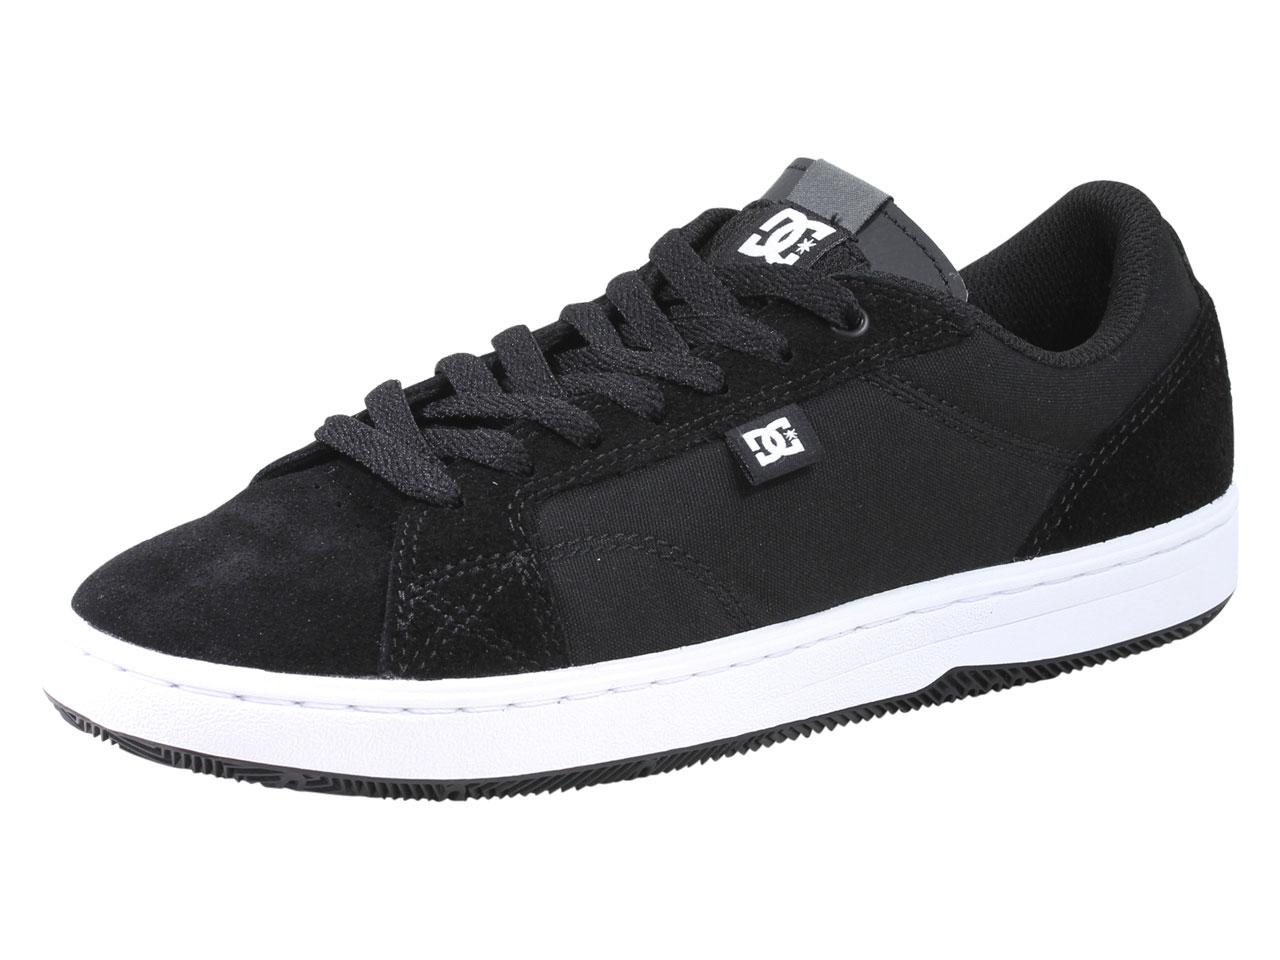 Image of DC Men's Astor Skateboarding Sneakers Shoes - Black - 7.5 D(M) US